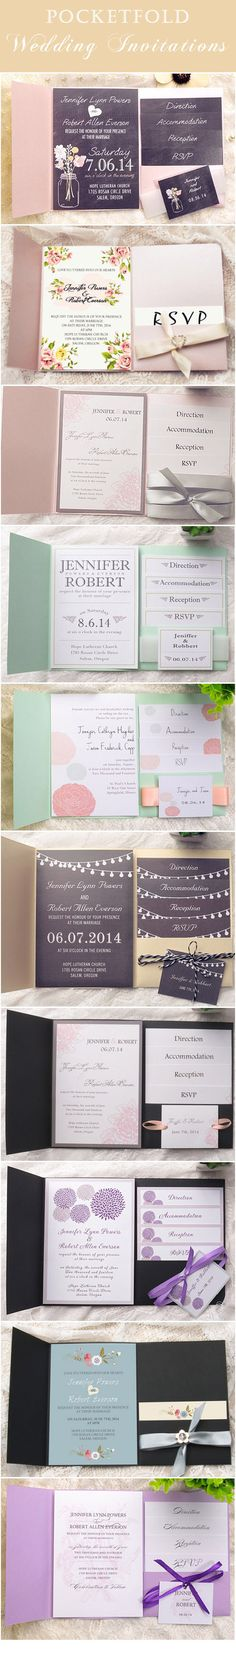 elegant pocket wedding invitations with free response cards and envelopes to match your wedding colors